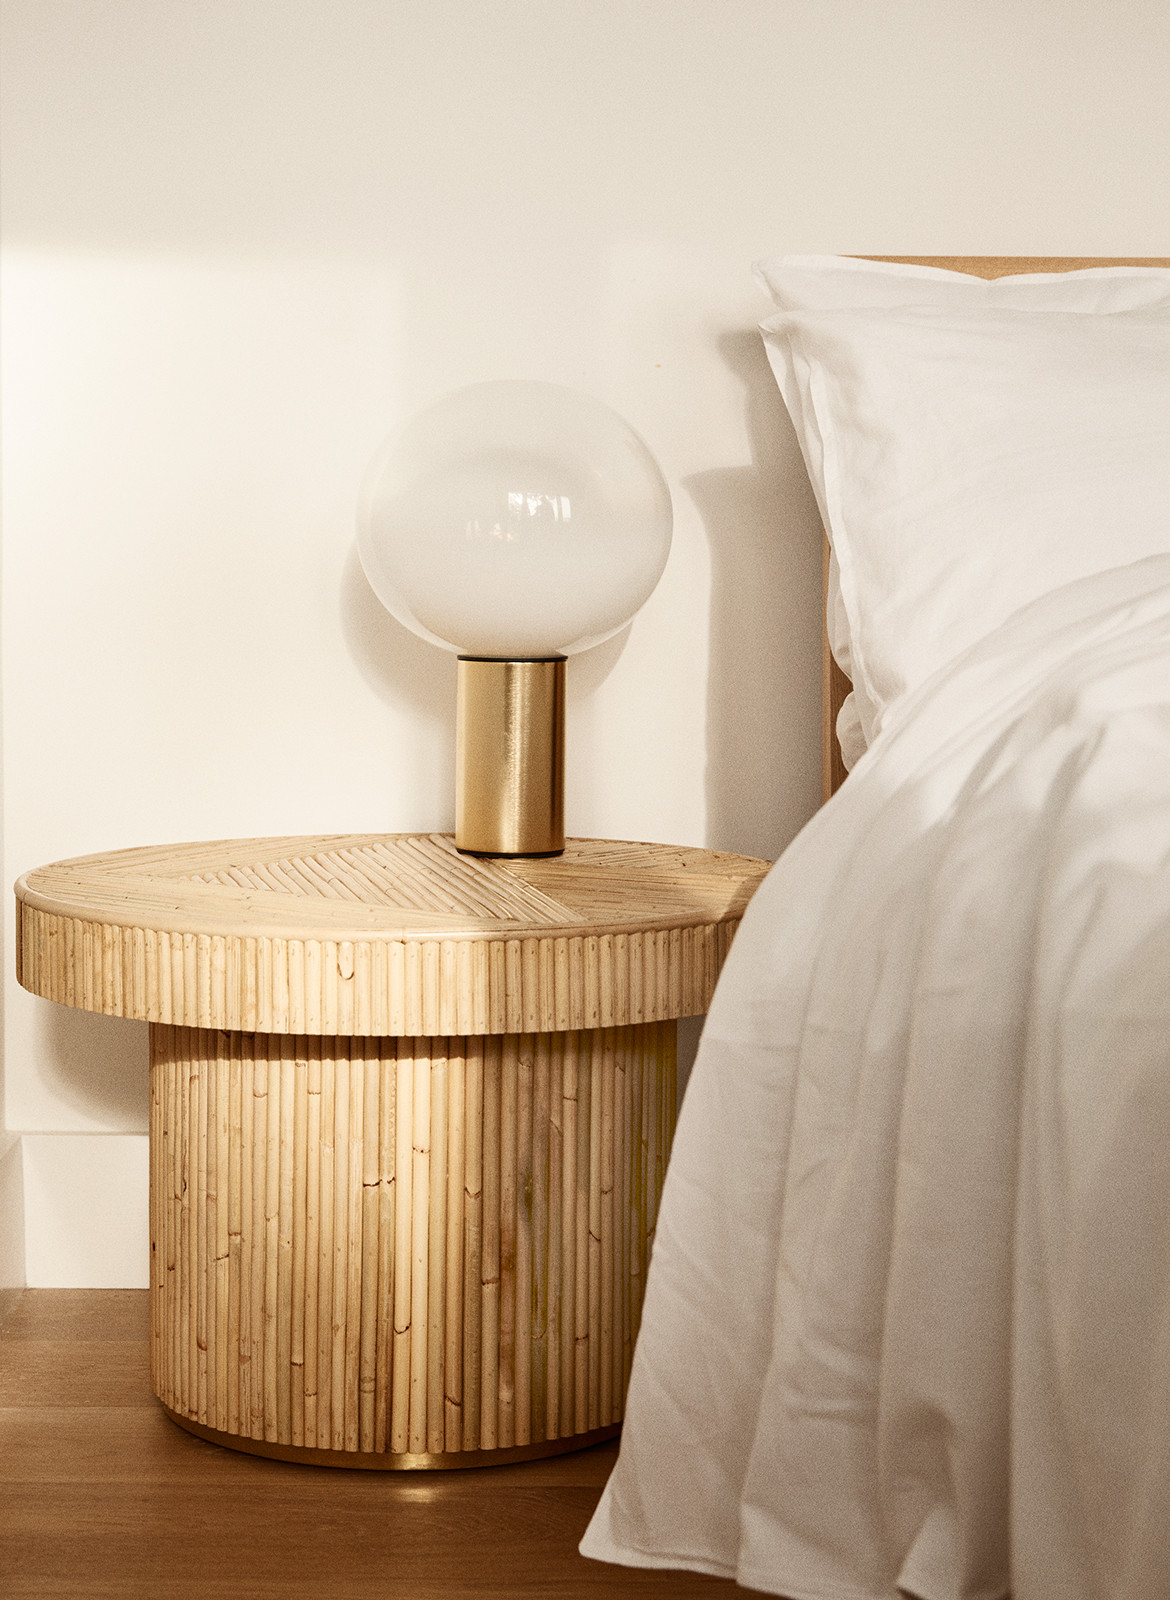 Golden Sarah Ellison Studio CC Dave Wheeler bed side table